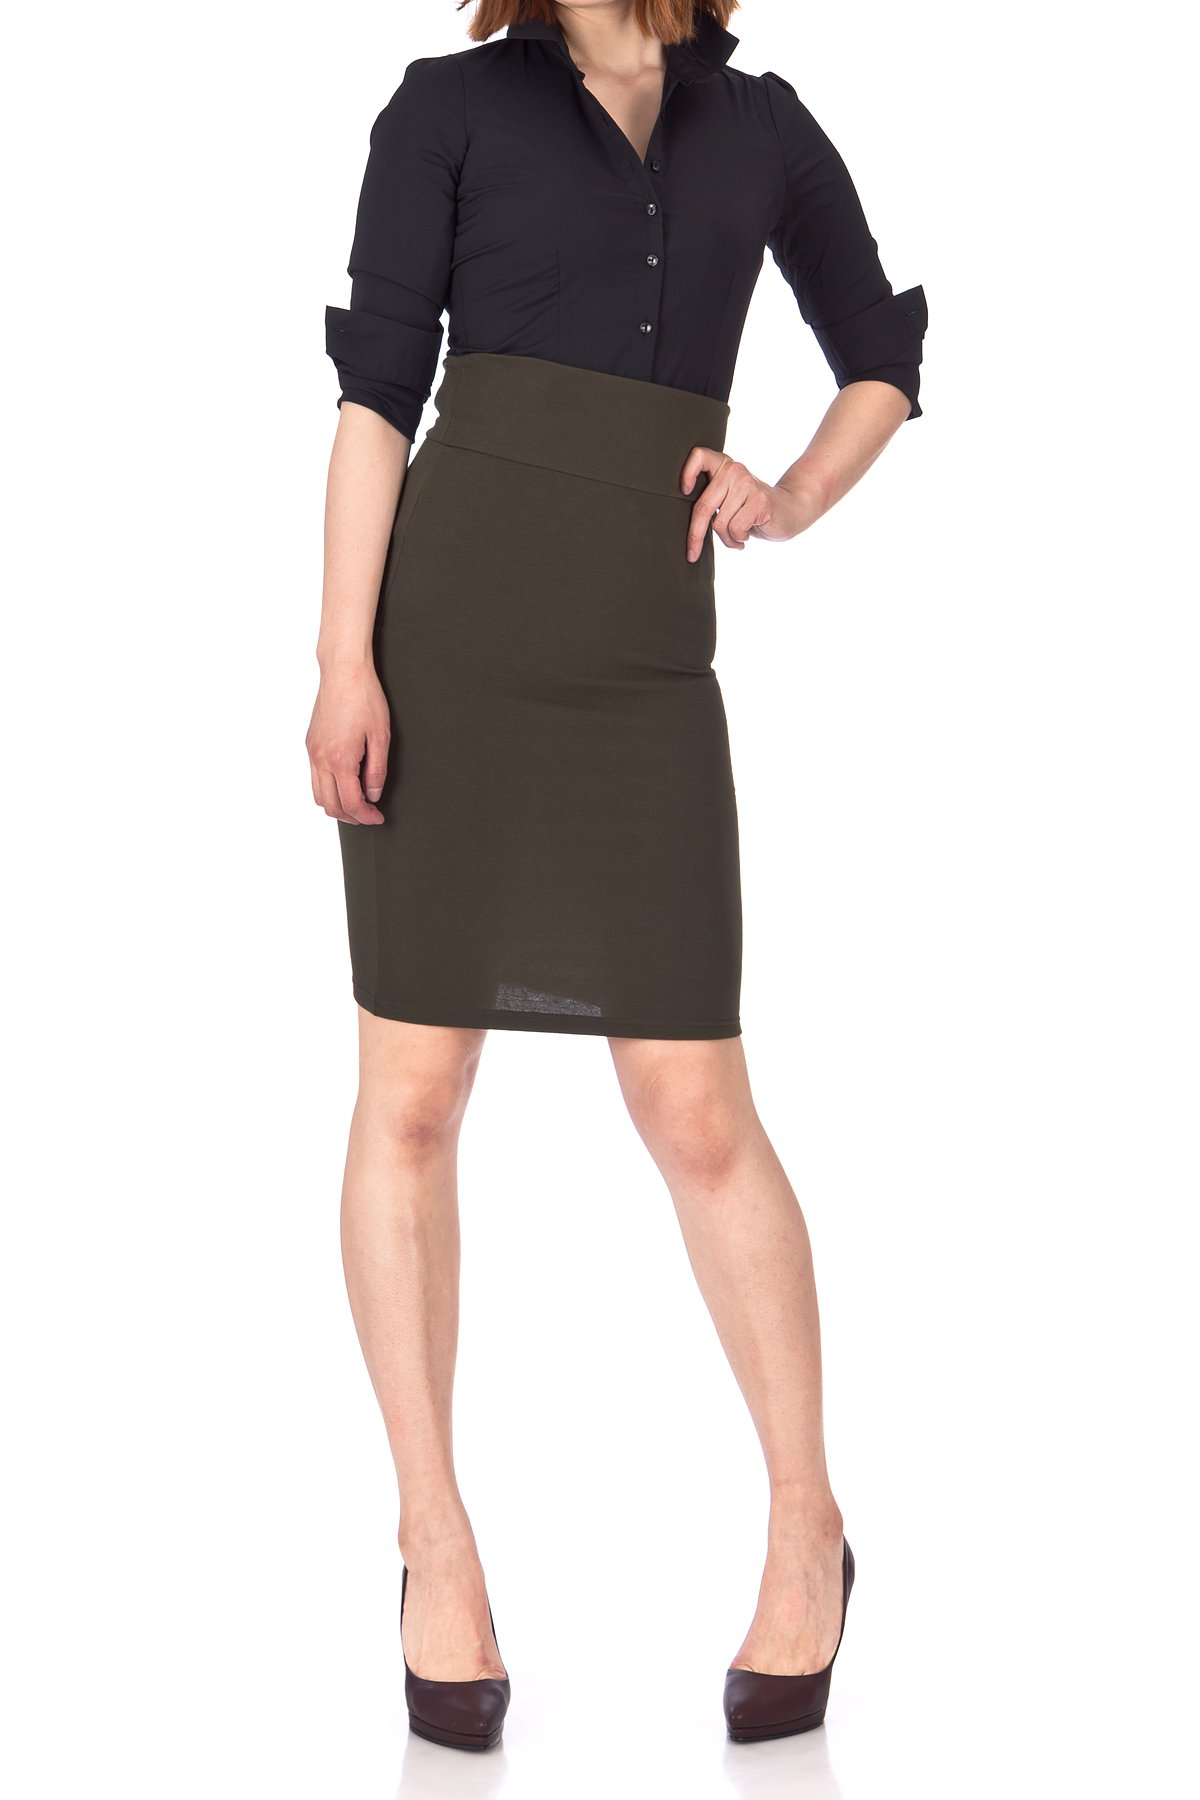 Every Occasion Stretch Pull on Wide High Waist Bodycon Pencil Knee Length Midi Skirt Khaki 02